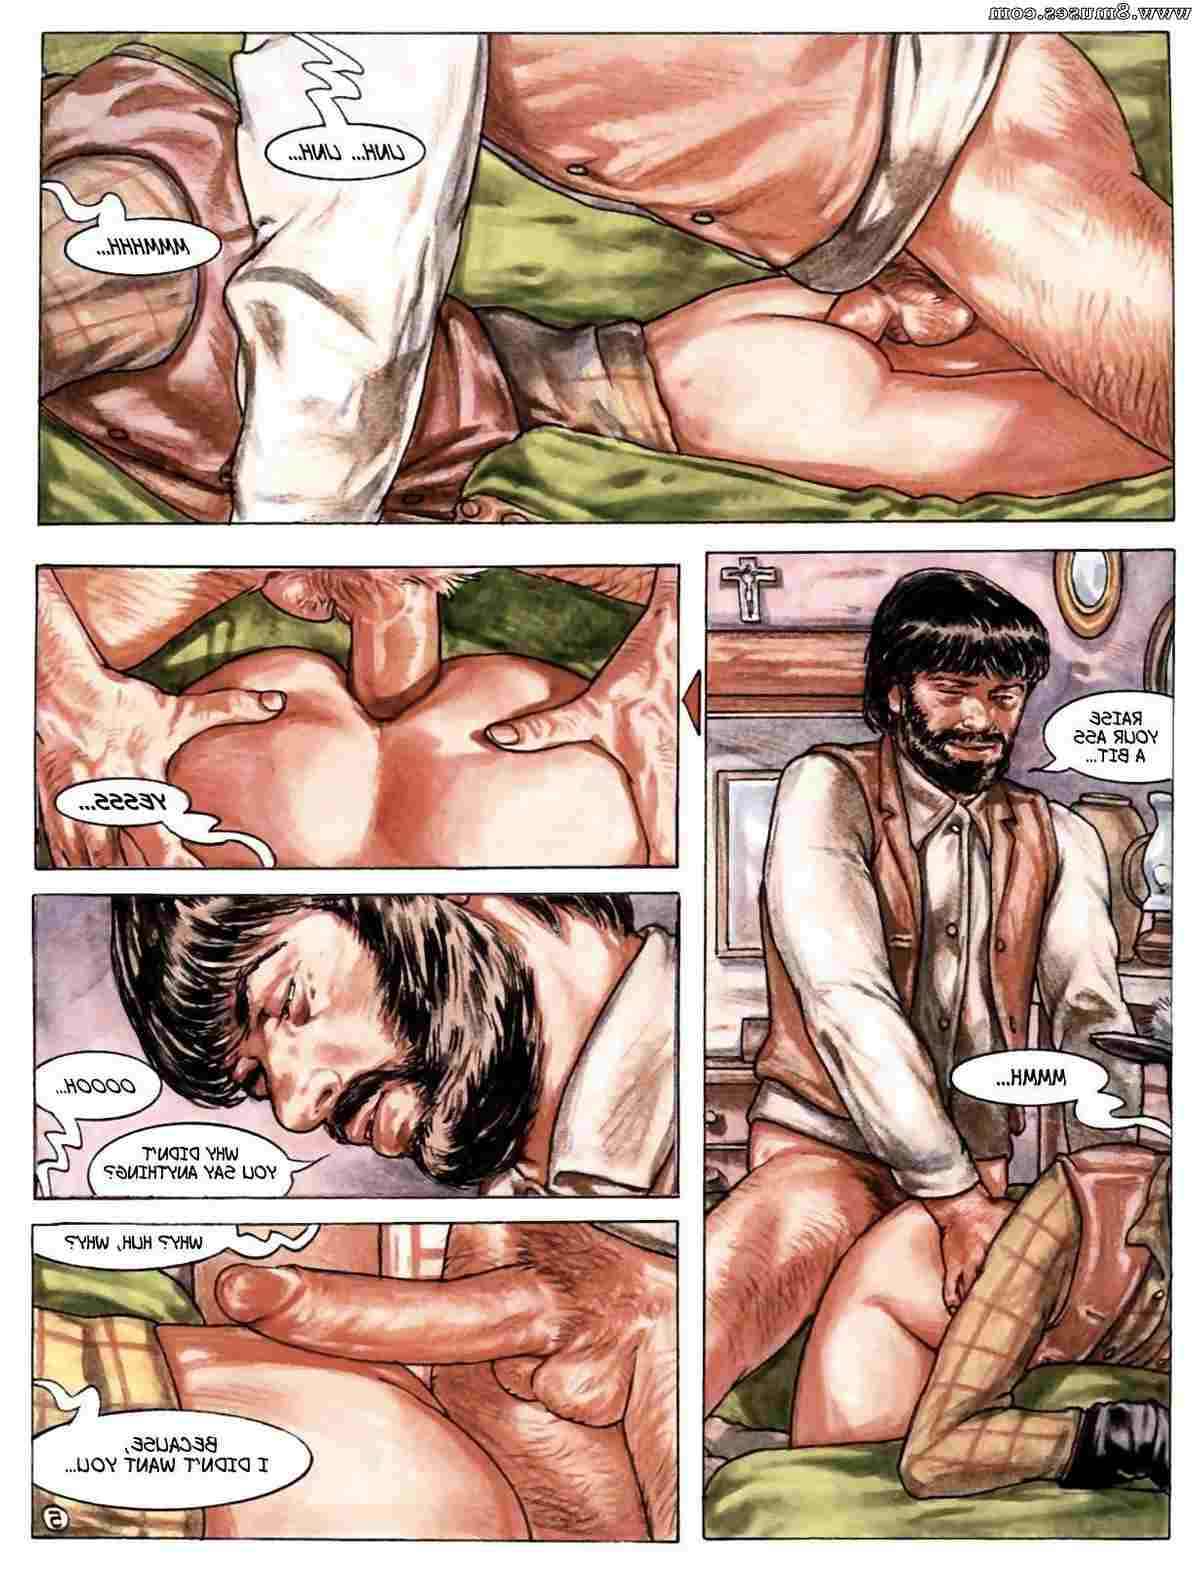 Selen-Comics/Beloved-Submission Beloved_Submission__8muses_-_Sex_and_Porn_Comics_21.jpg